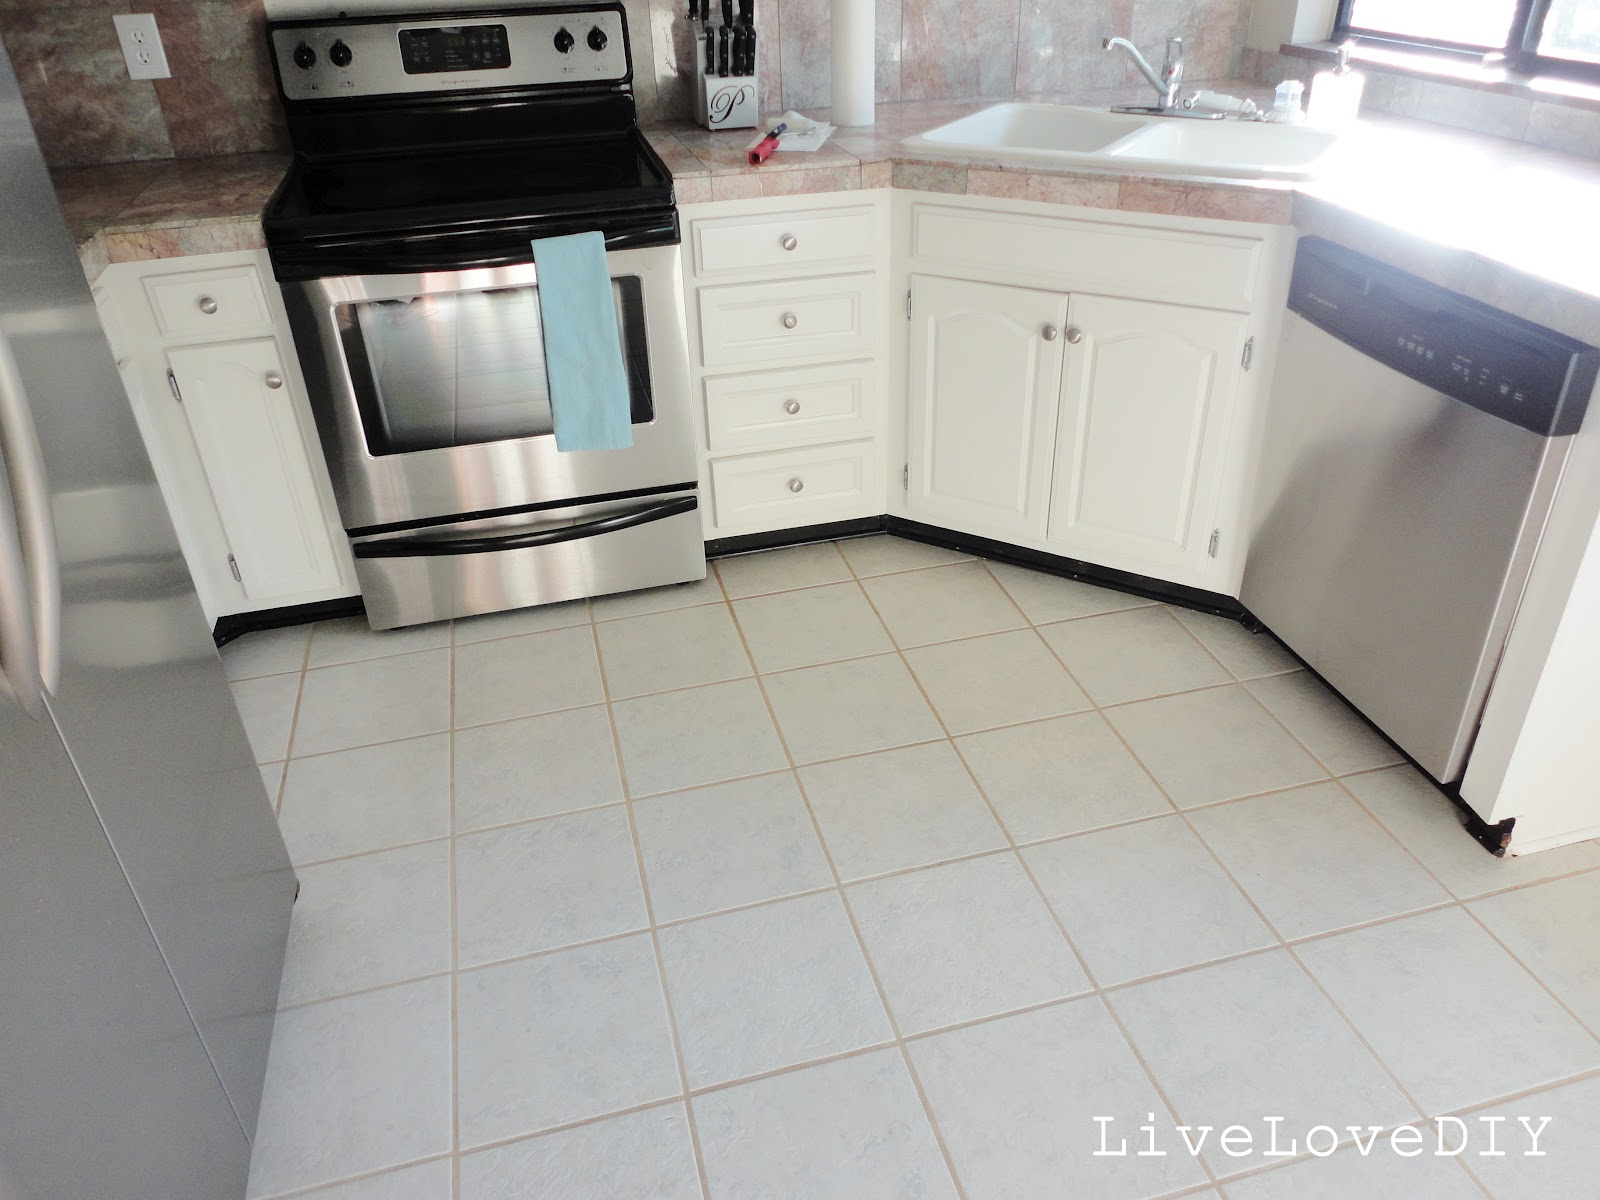 Tile Kitchen Floors Livelovediy How To Restore Dirty Tile Grout